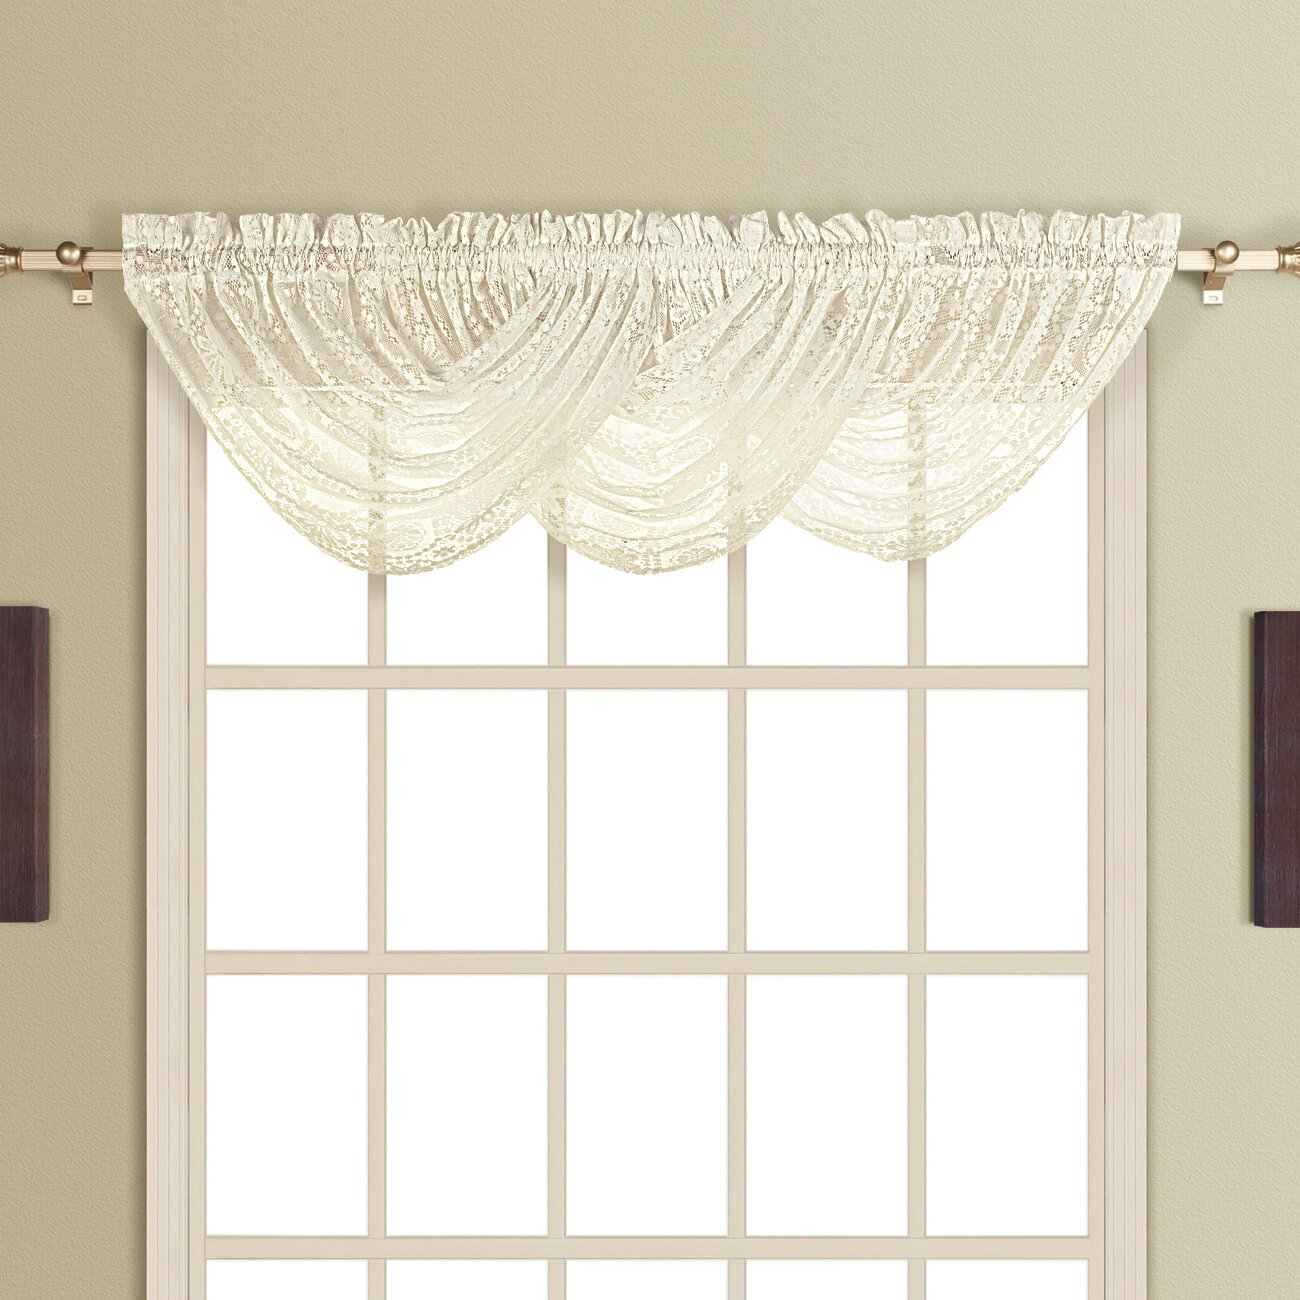 United Curtain Co New Rochelle Waterfall Curtain Valance Reviews Wayfair